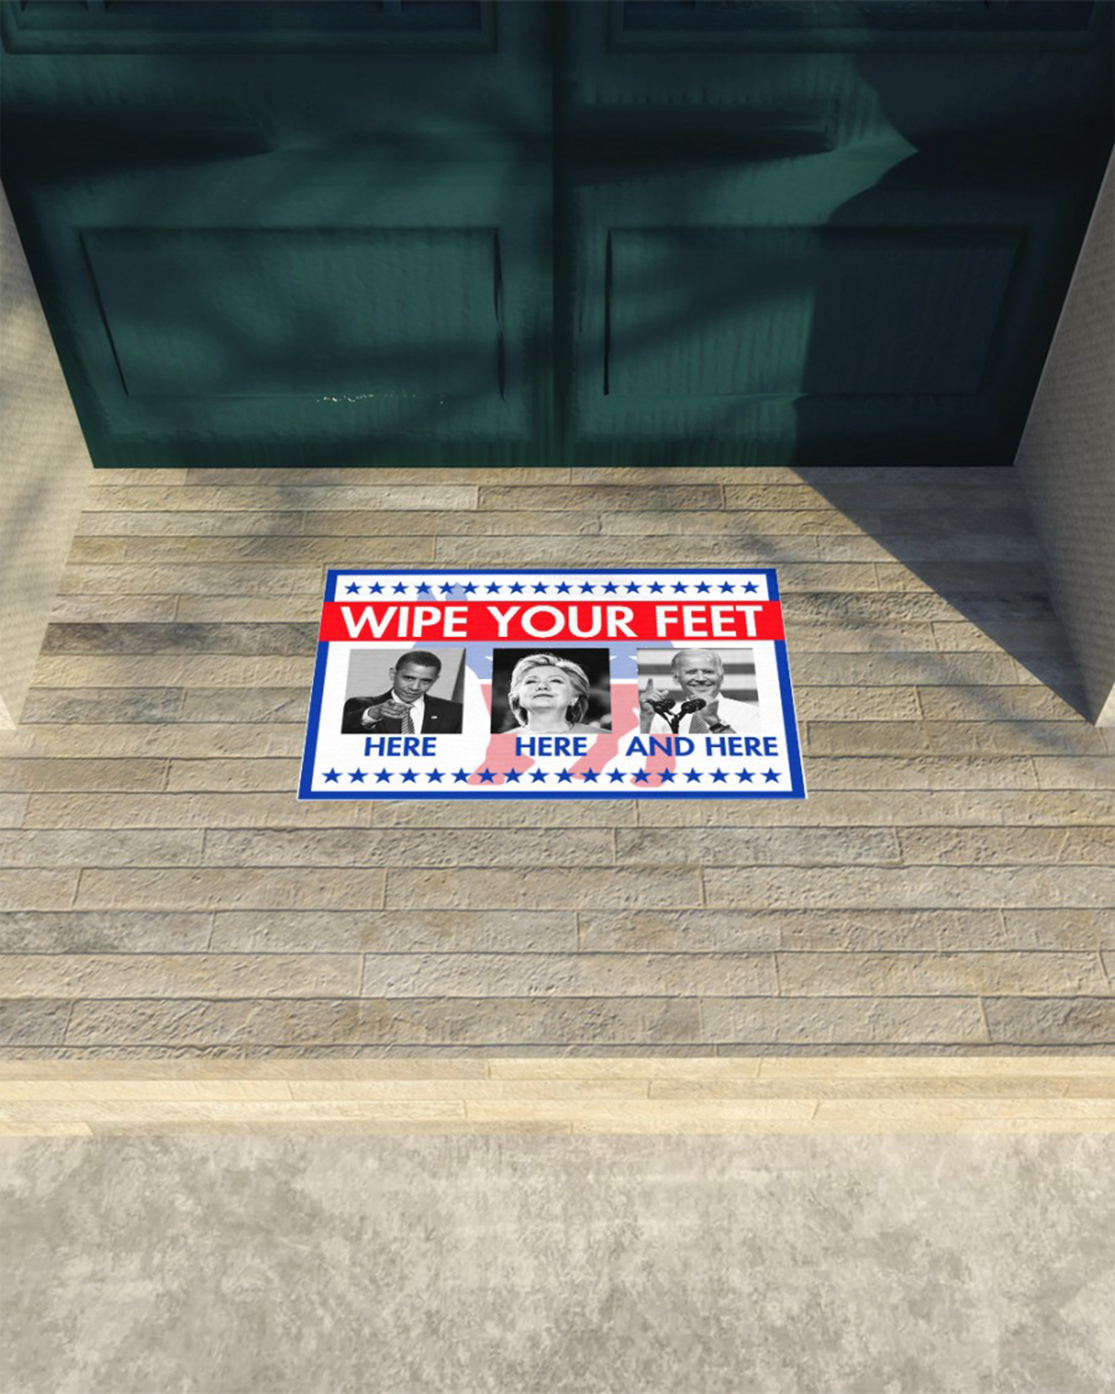 Barrack Obama Hillary Clinton Joe Biden Wipe your feet here here and here doormat - Picture 3